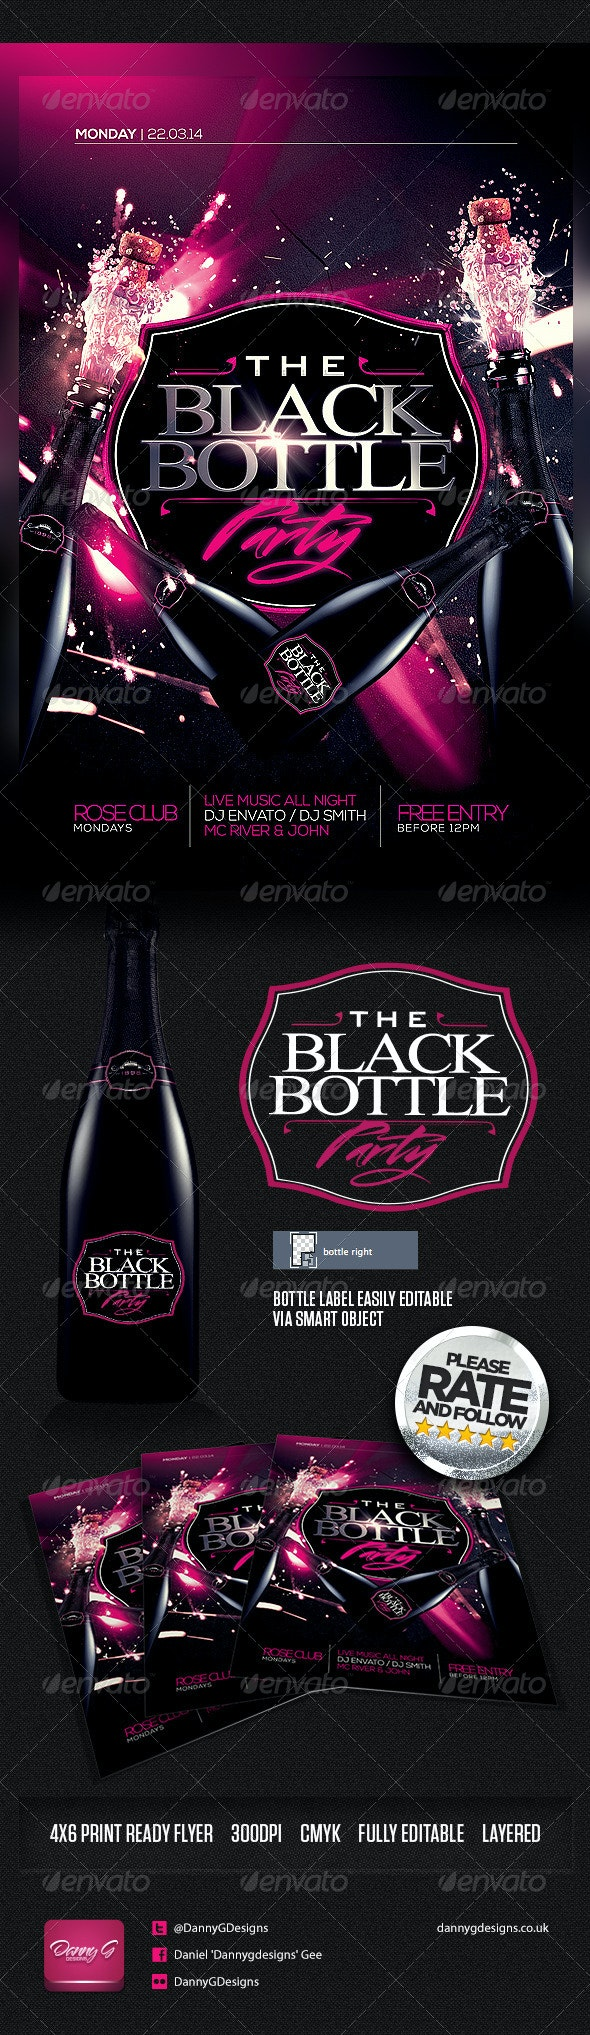 The Black Bottle Party Flyer Template PSD - Clubs & Parties Events